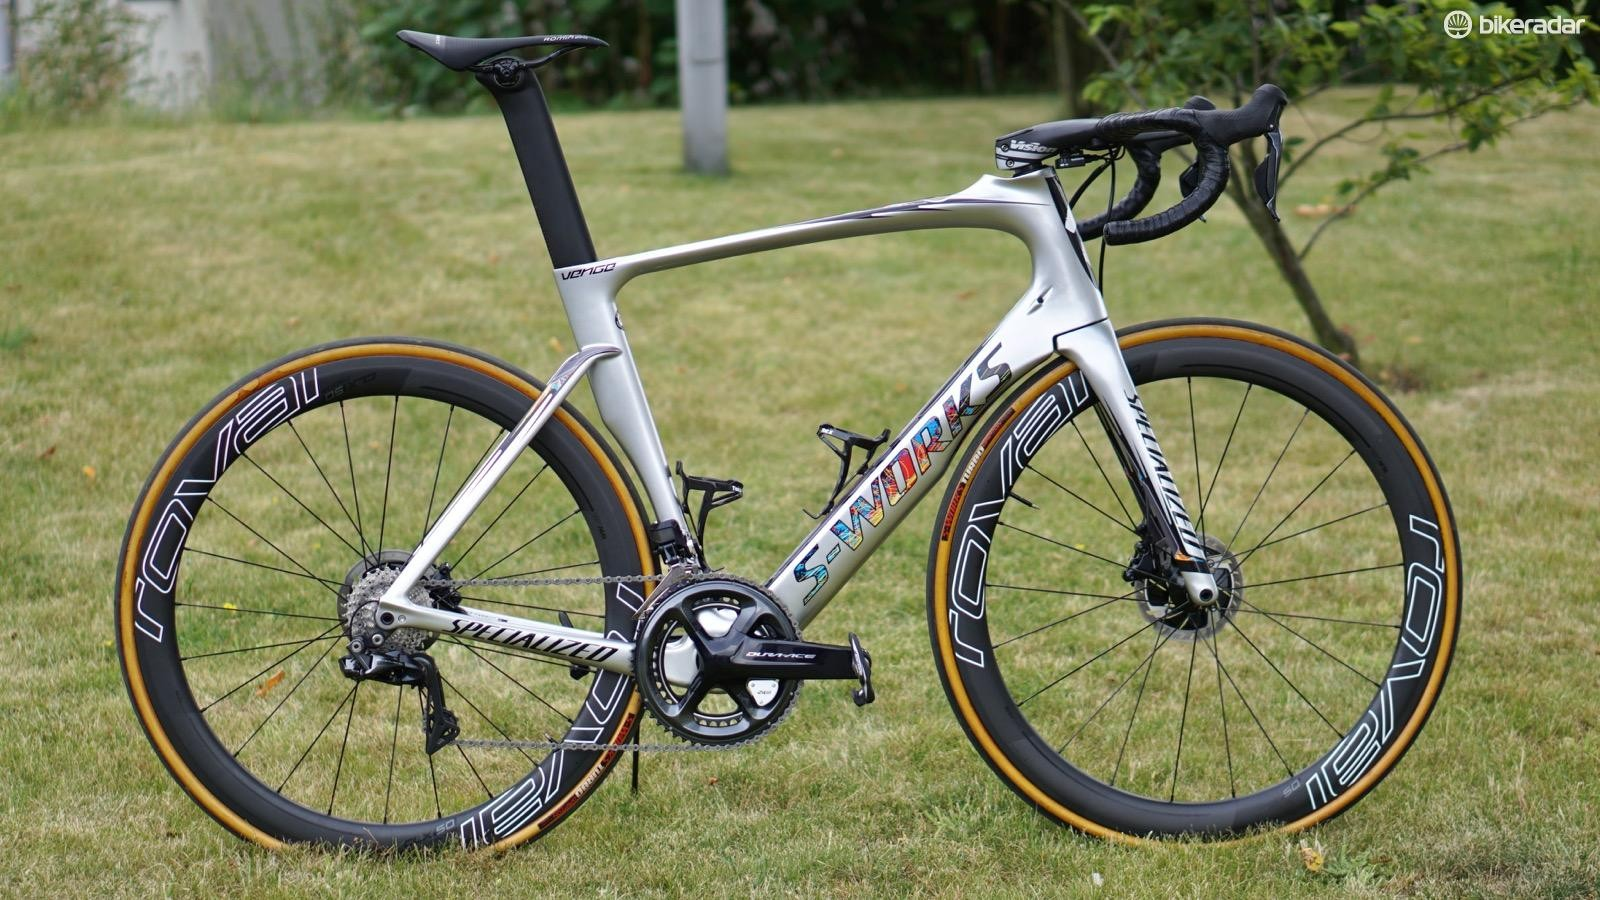 Marcel Kittel won five stages aboard this Specialized S-Works Venge Disc